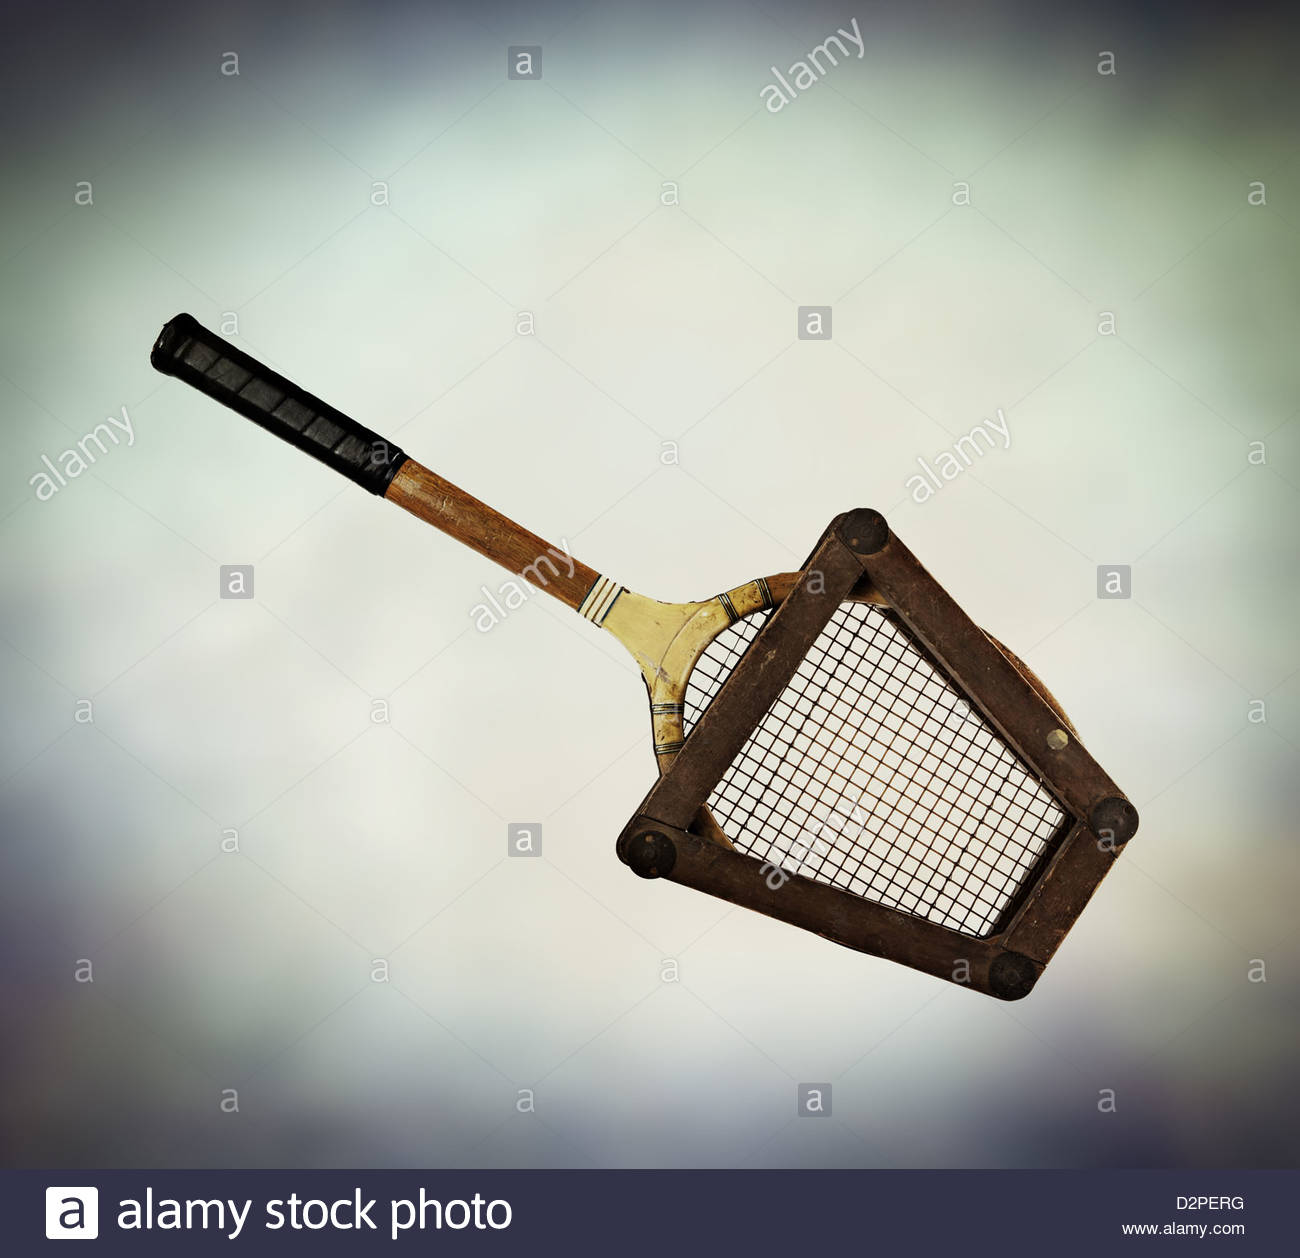 old fashioned tennis racket - Stock Image